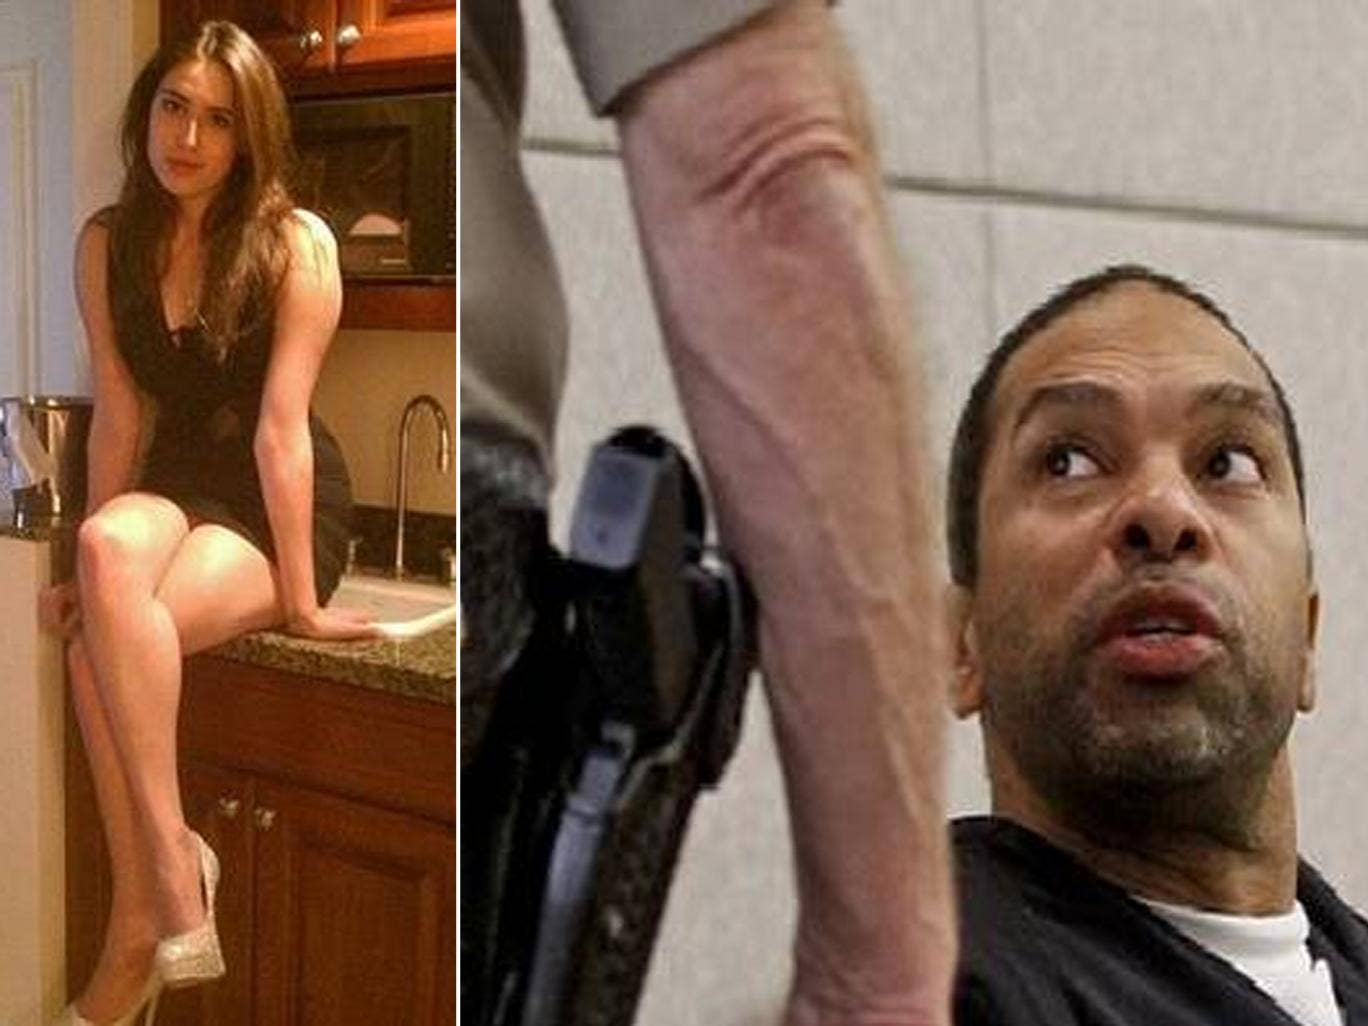 22-year-old Brittany Killgore had agreed to go on a date with Louis Perez before her murder